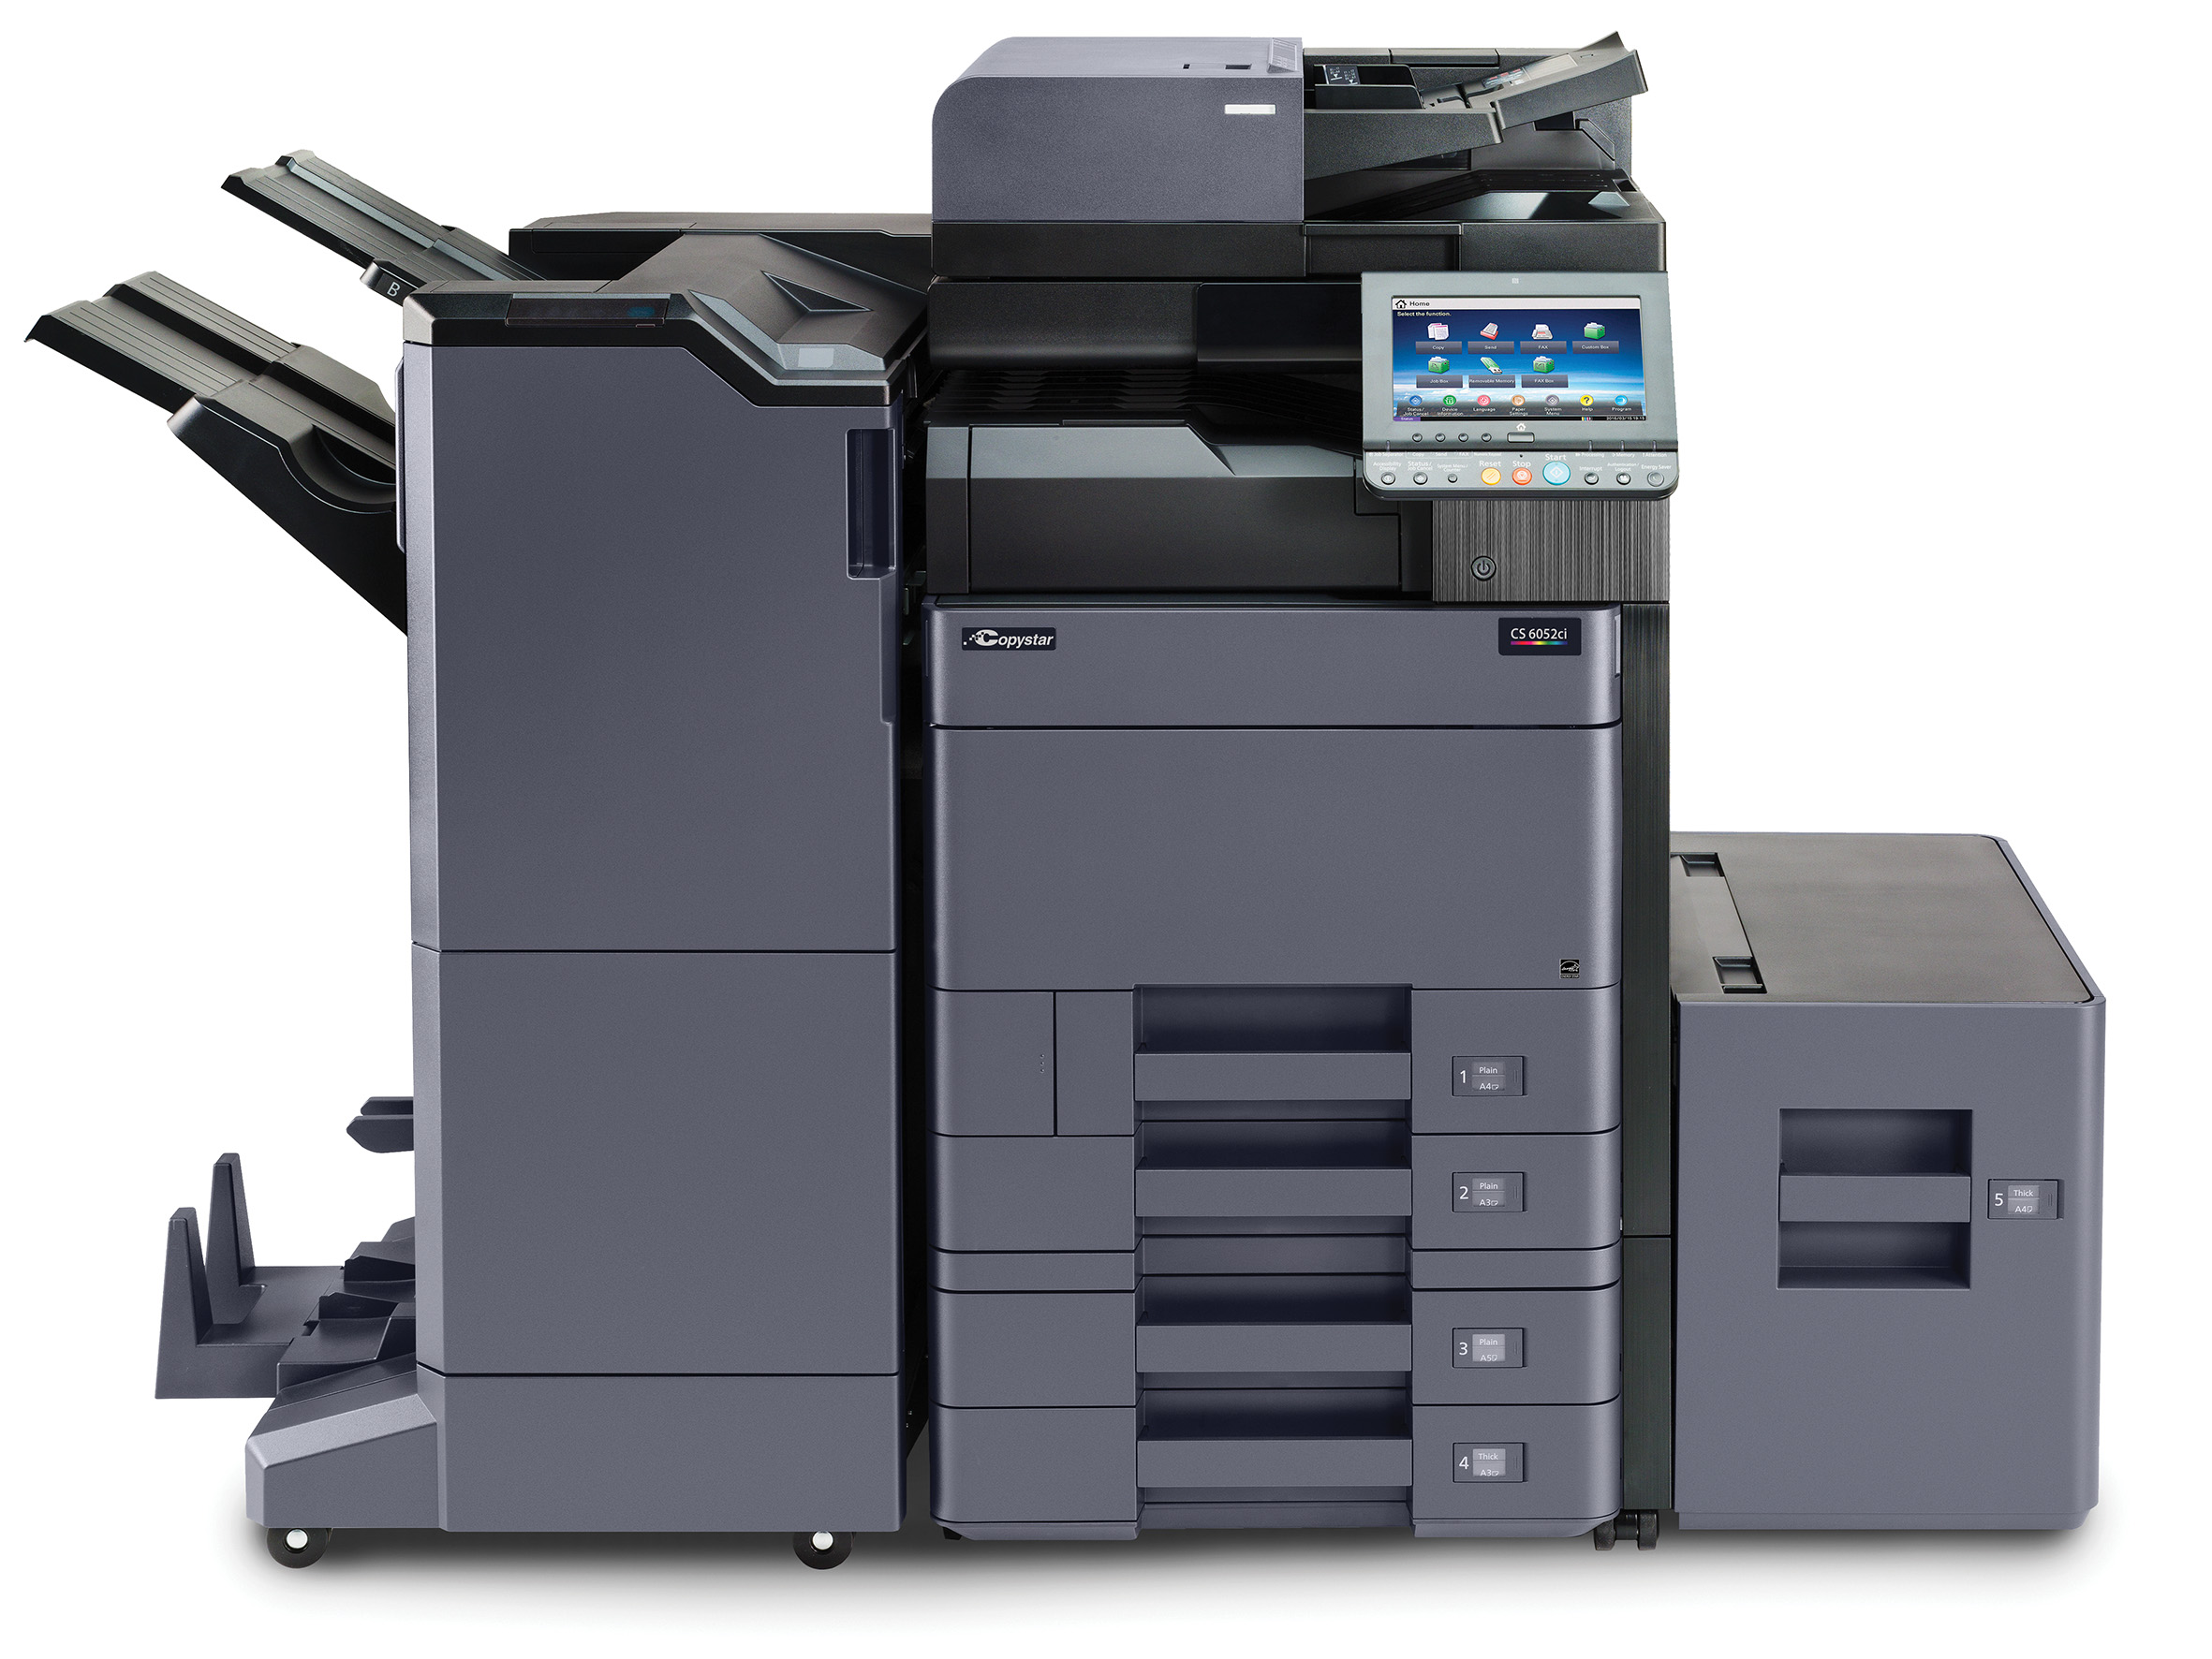 Copystar Cs 6052ci Copystar Copiers Chicago Color Mfp